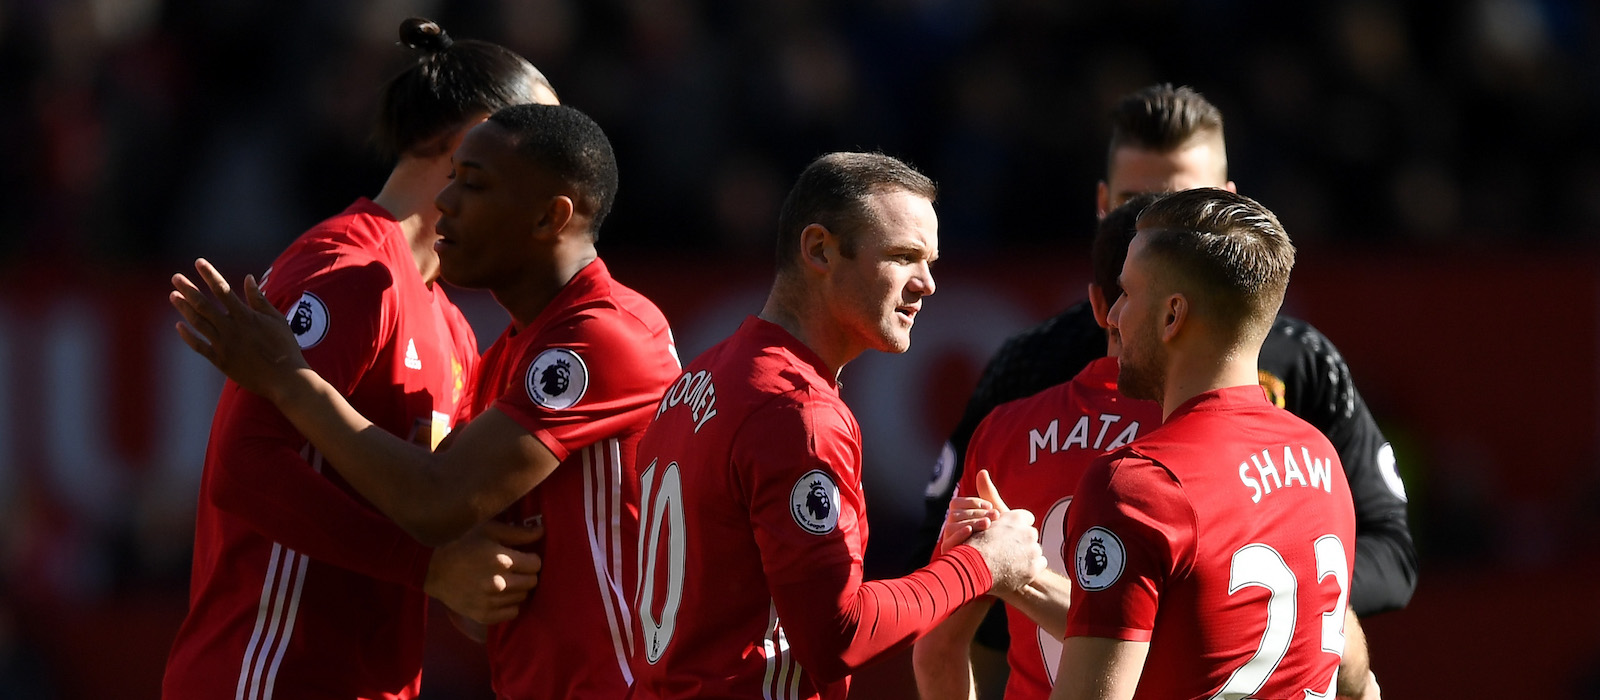 Wayne Rooney expected to leave Manchester United for Everton in the summer – report